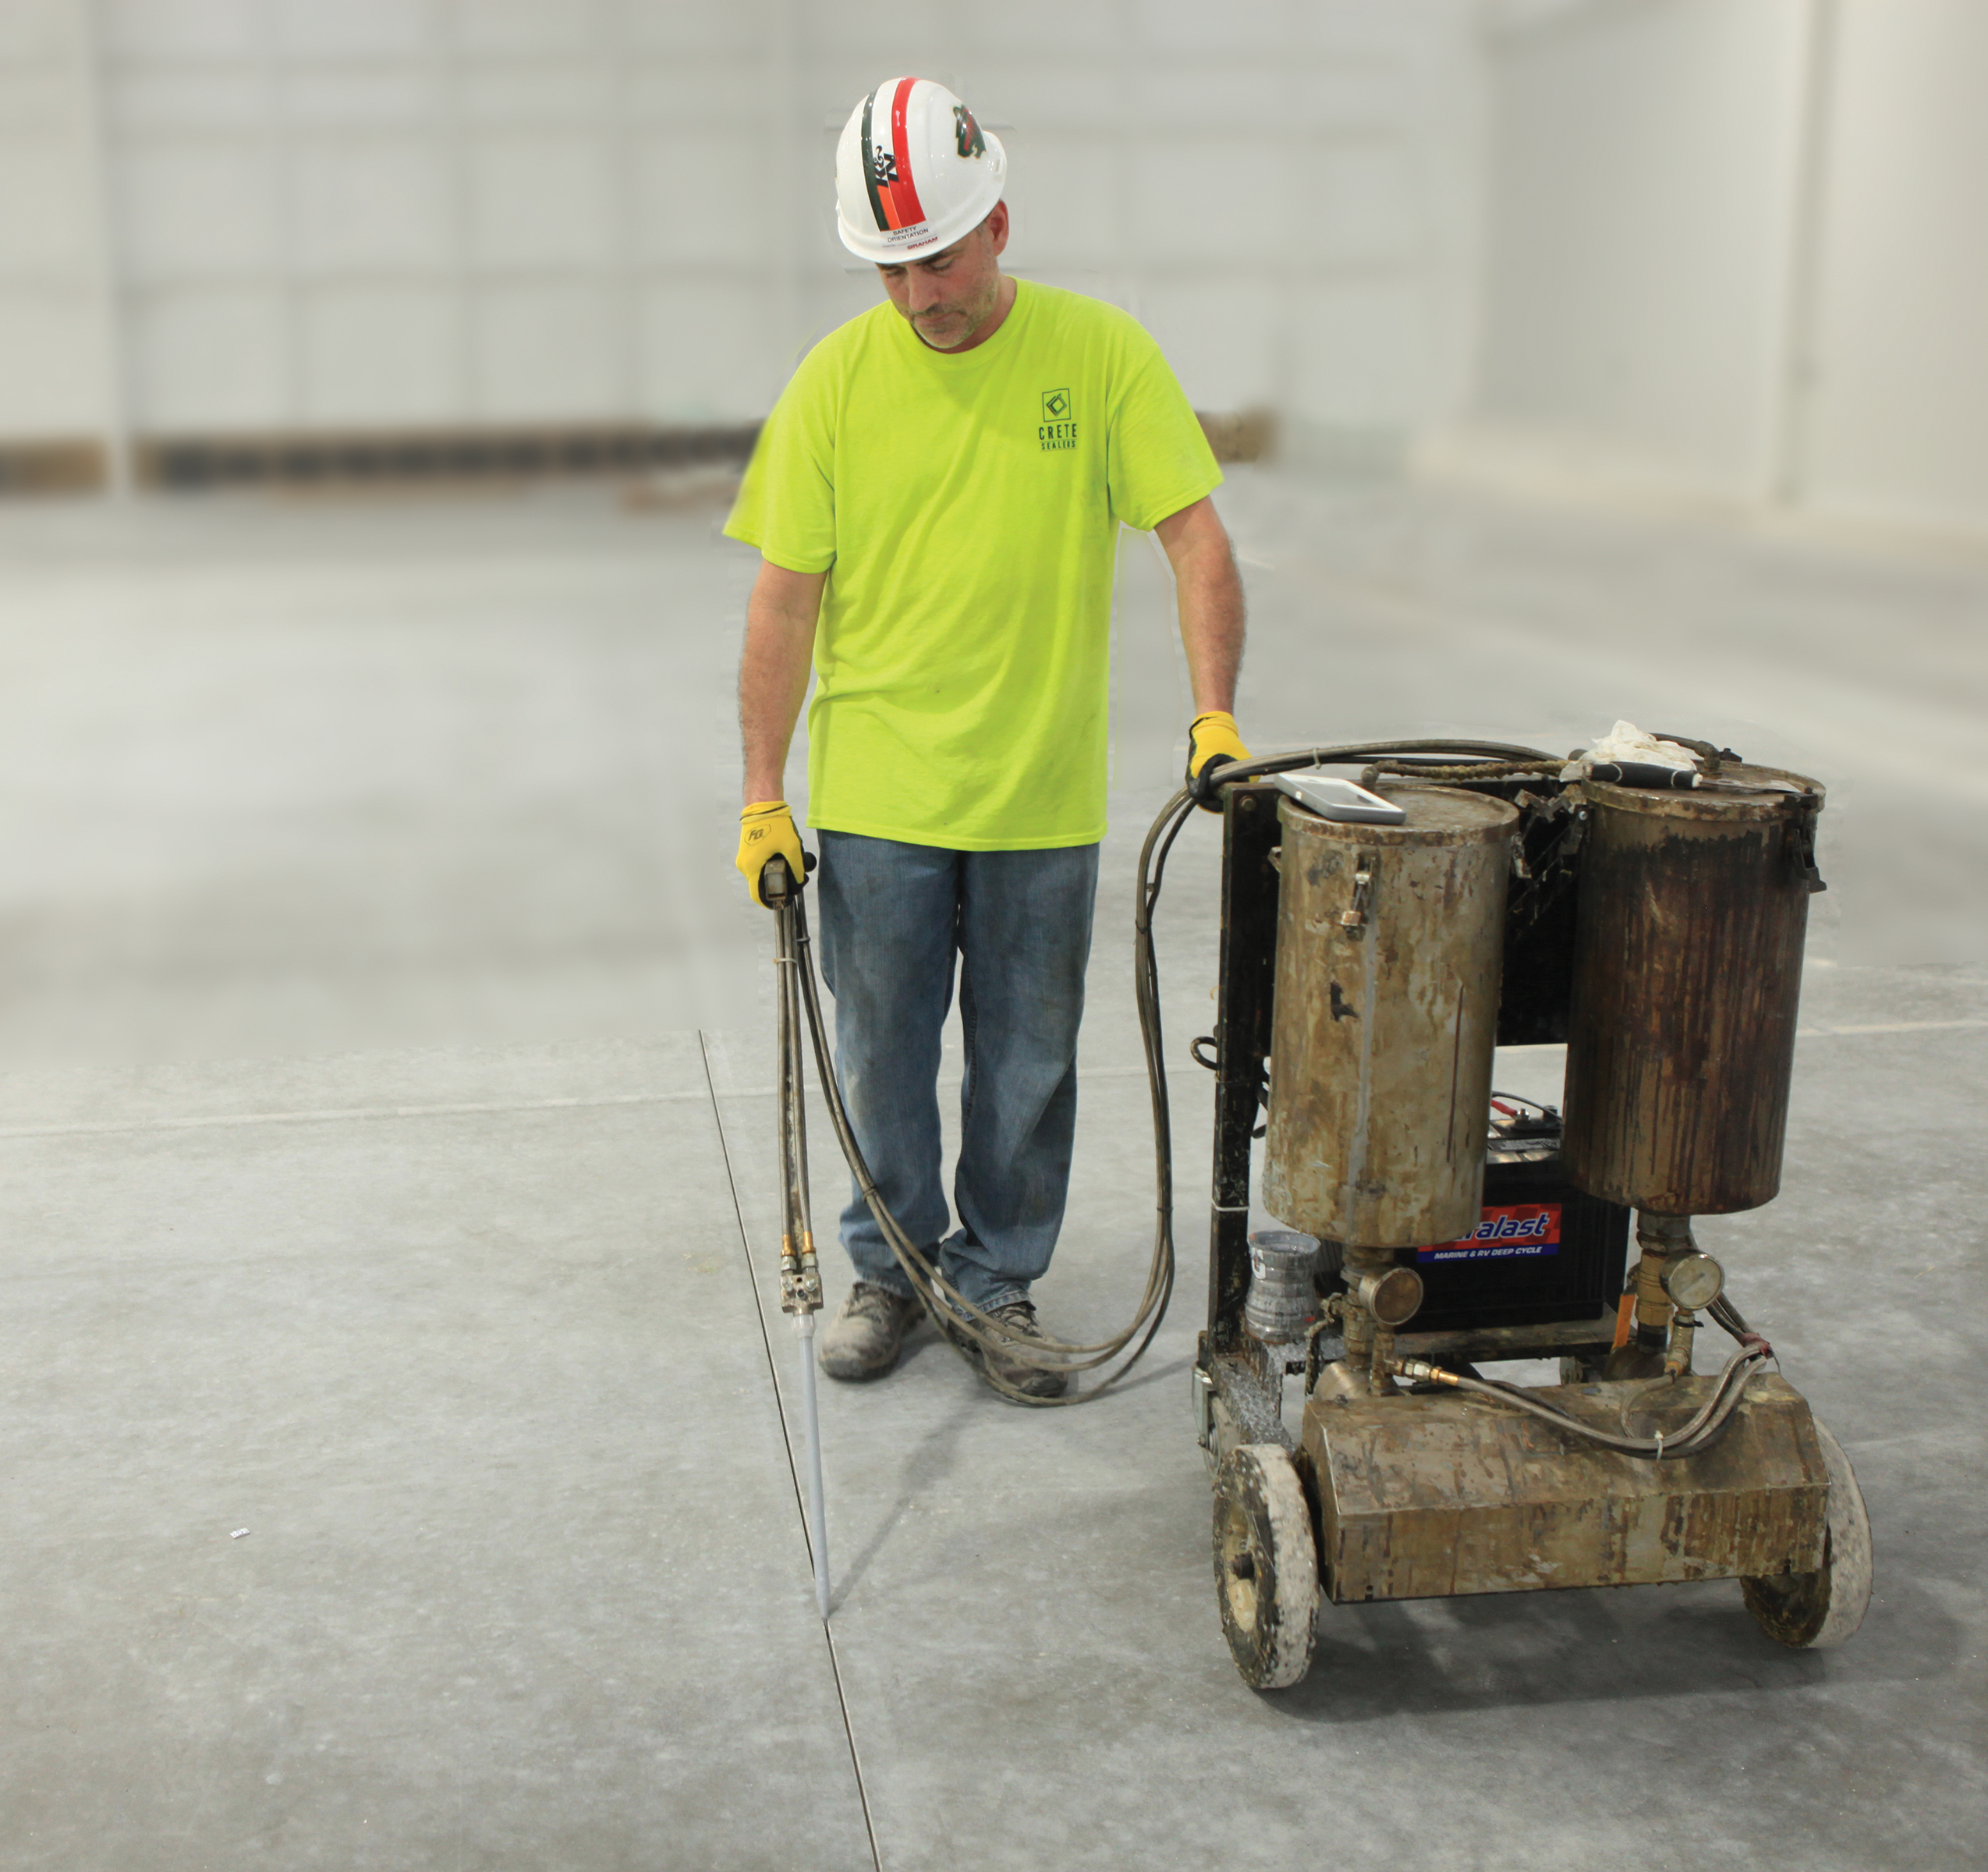 A man runs a machine that is created to fill concrete control joints.